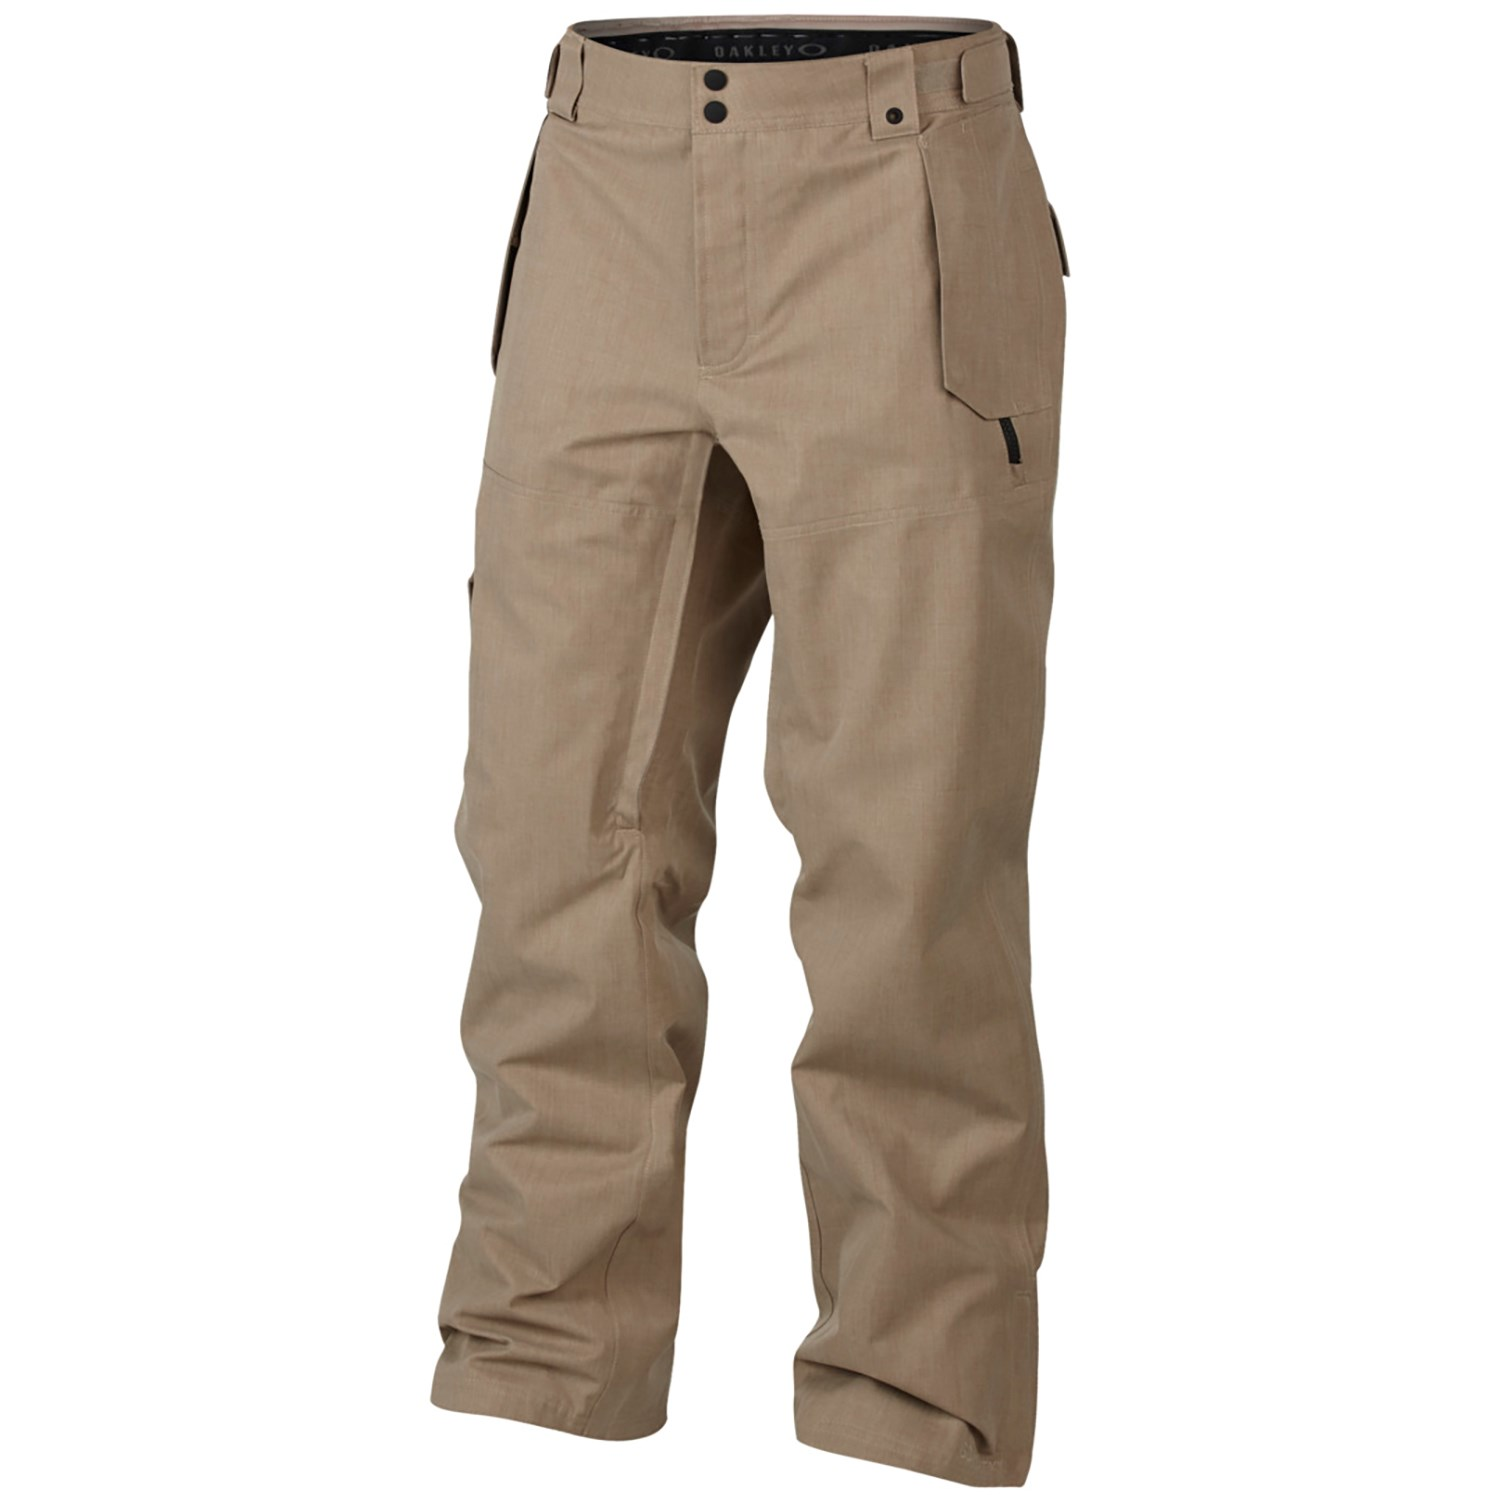 oakley ski pants on sale  oakley baldy 2l gore tex? biozone? pants $339.95 $254.99 sale